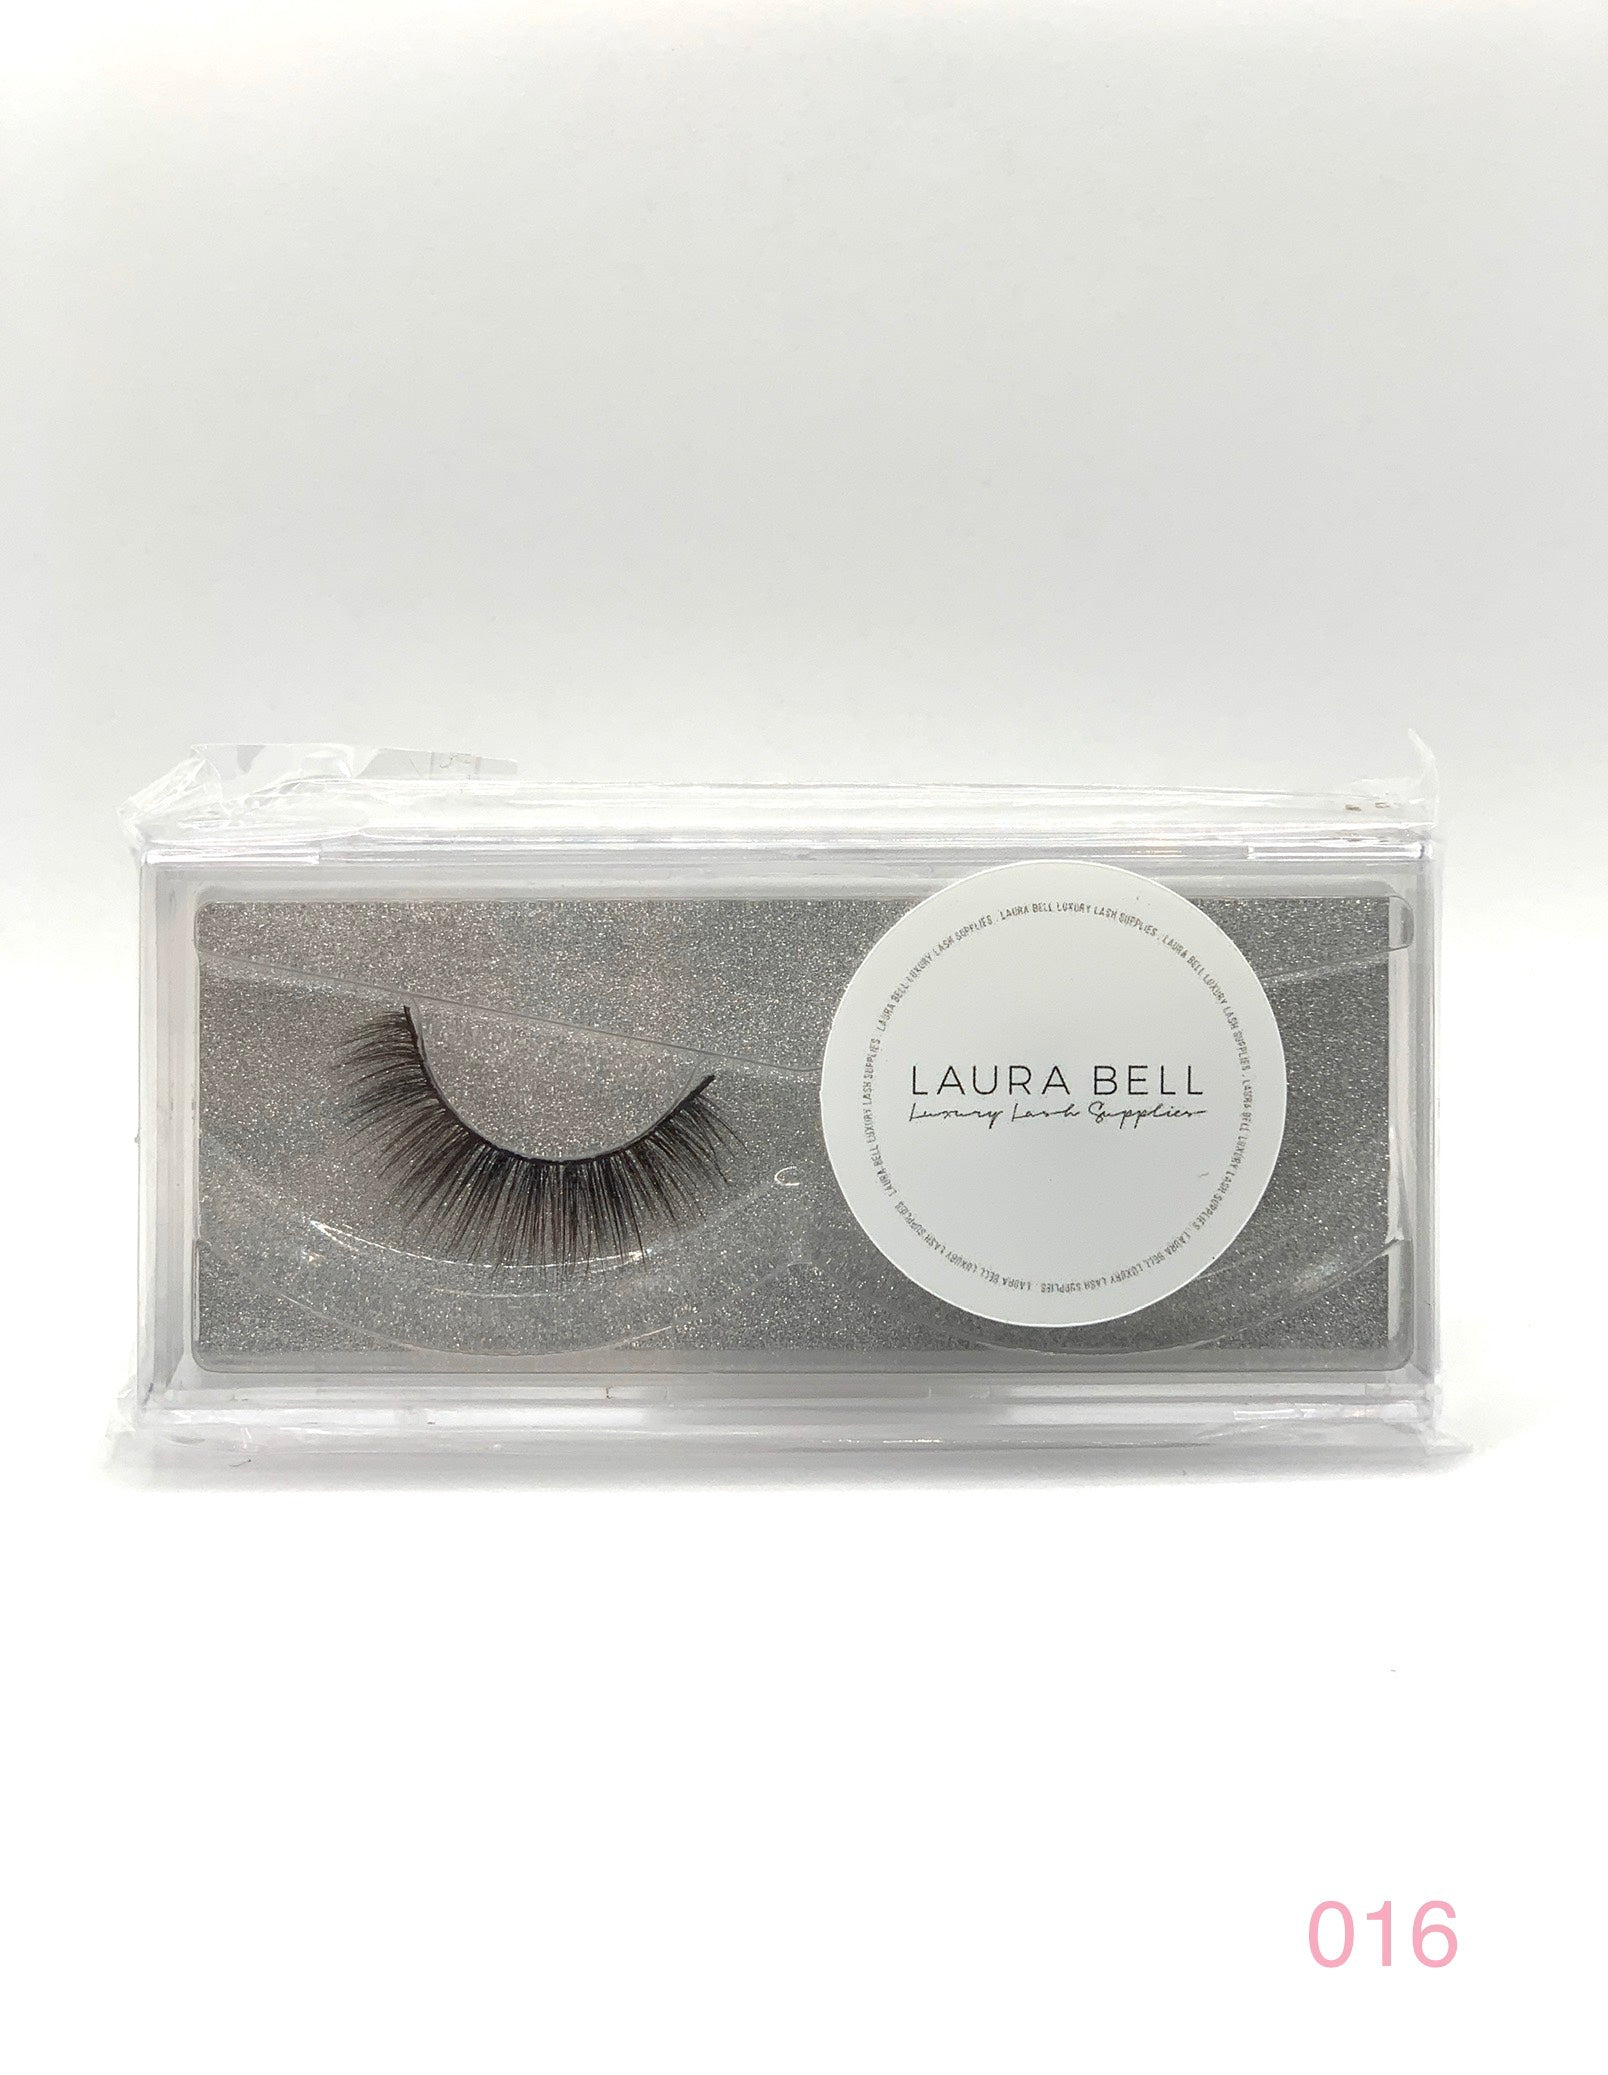 Strip Lashes - Laura Bell Luxury Lash Supplies